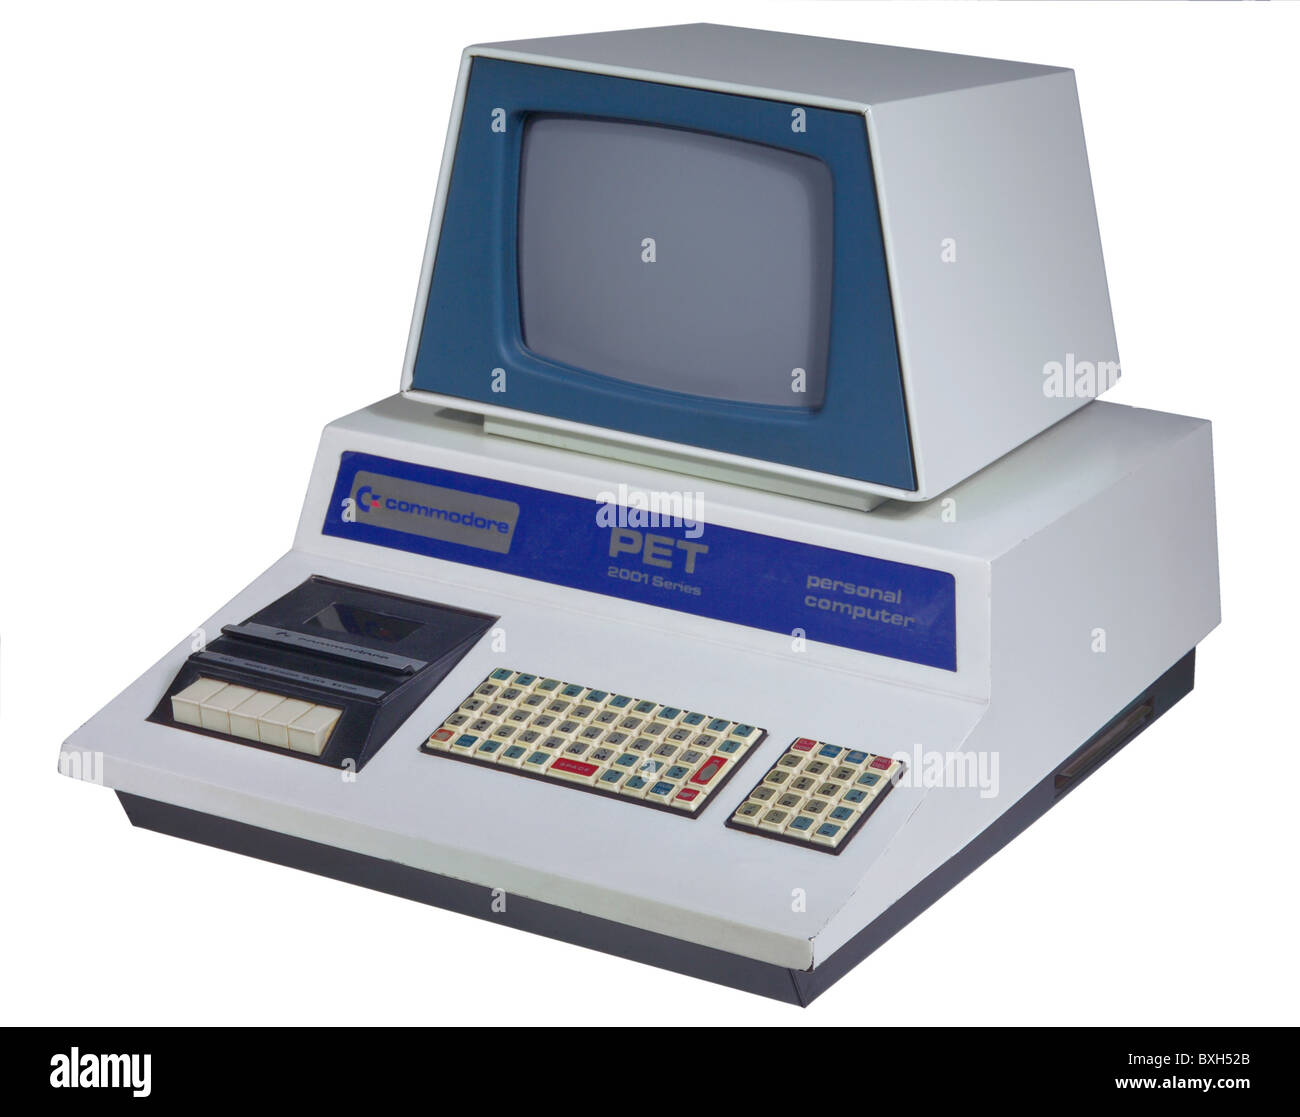 computing / electronics, computer, Commodore PET 2001, USA, 1977 ...